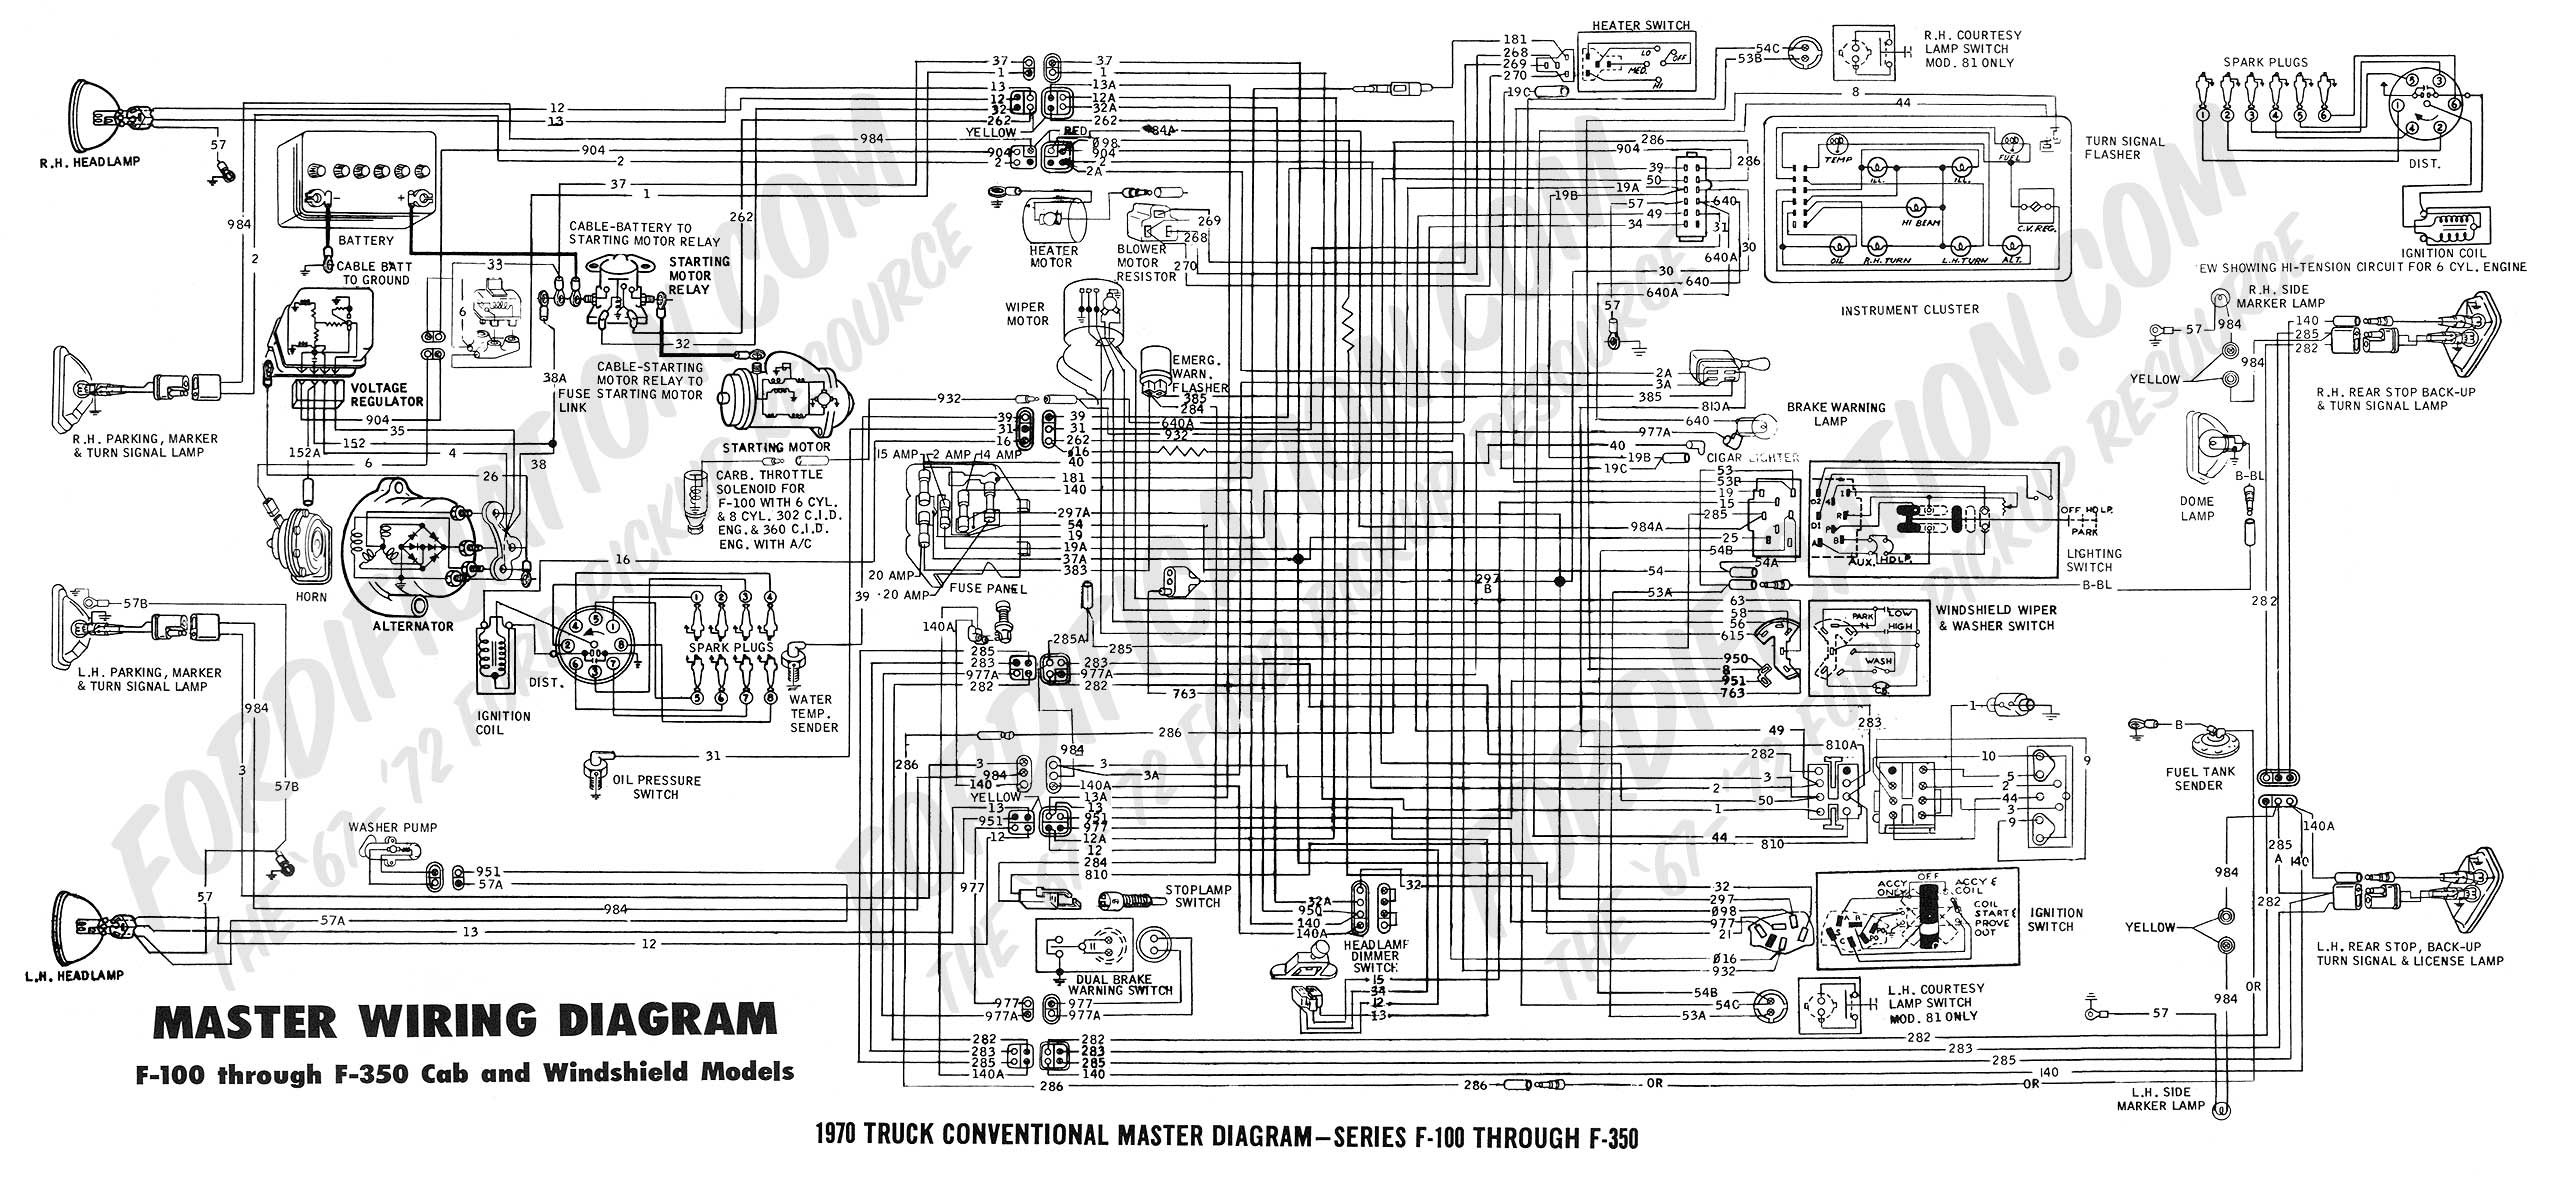 1978 Ford Truck Wiring Harness Diagrams Scematic Level Transmitter Diagram Third 1969 F100 1976 F